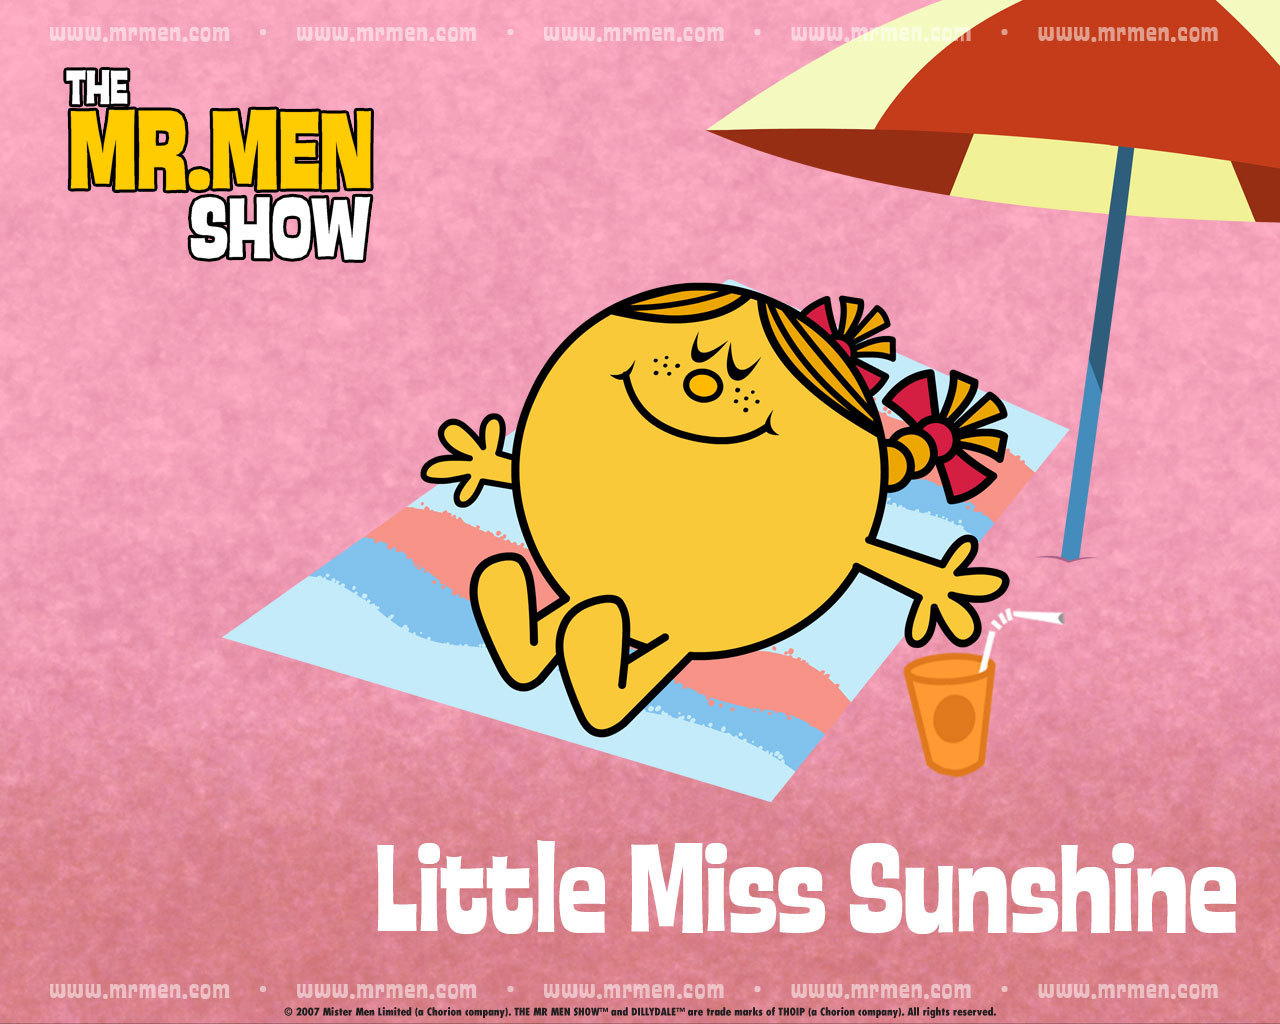 little miss sunshine relationship between A strong relationship in the film little miss sunshine directed by jonathan dayton and valerie faris is the relationship between frank and richard both characters .